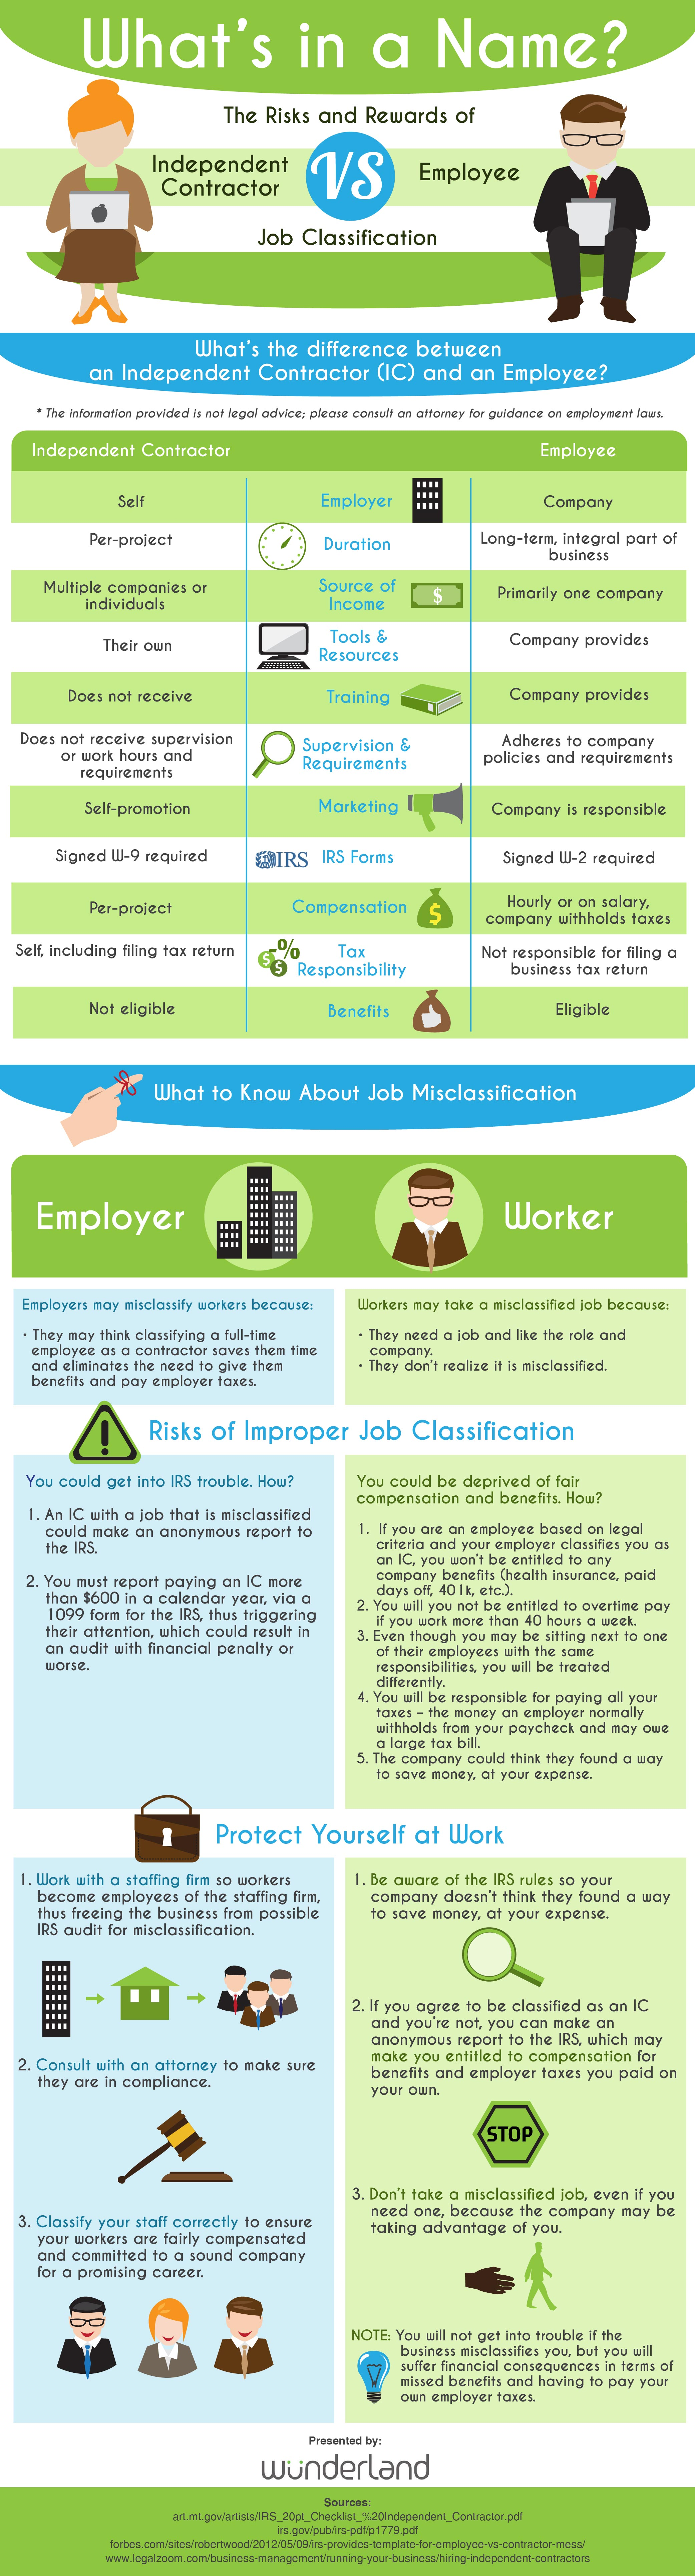 Contractor vs Employee-Risks-and-Rewards Infographic